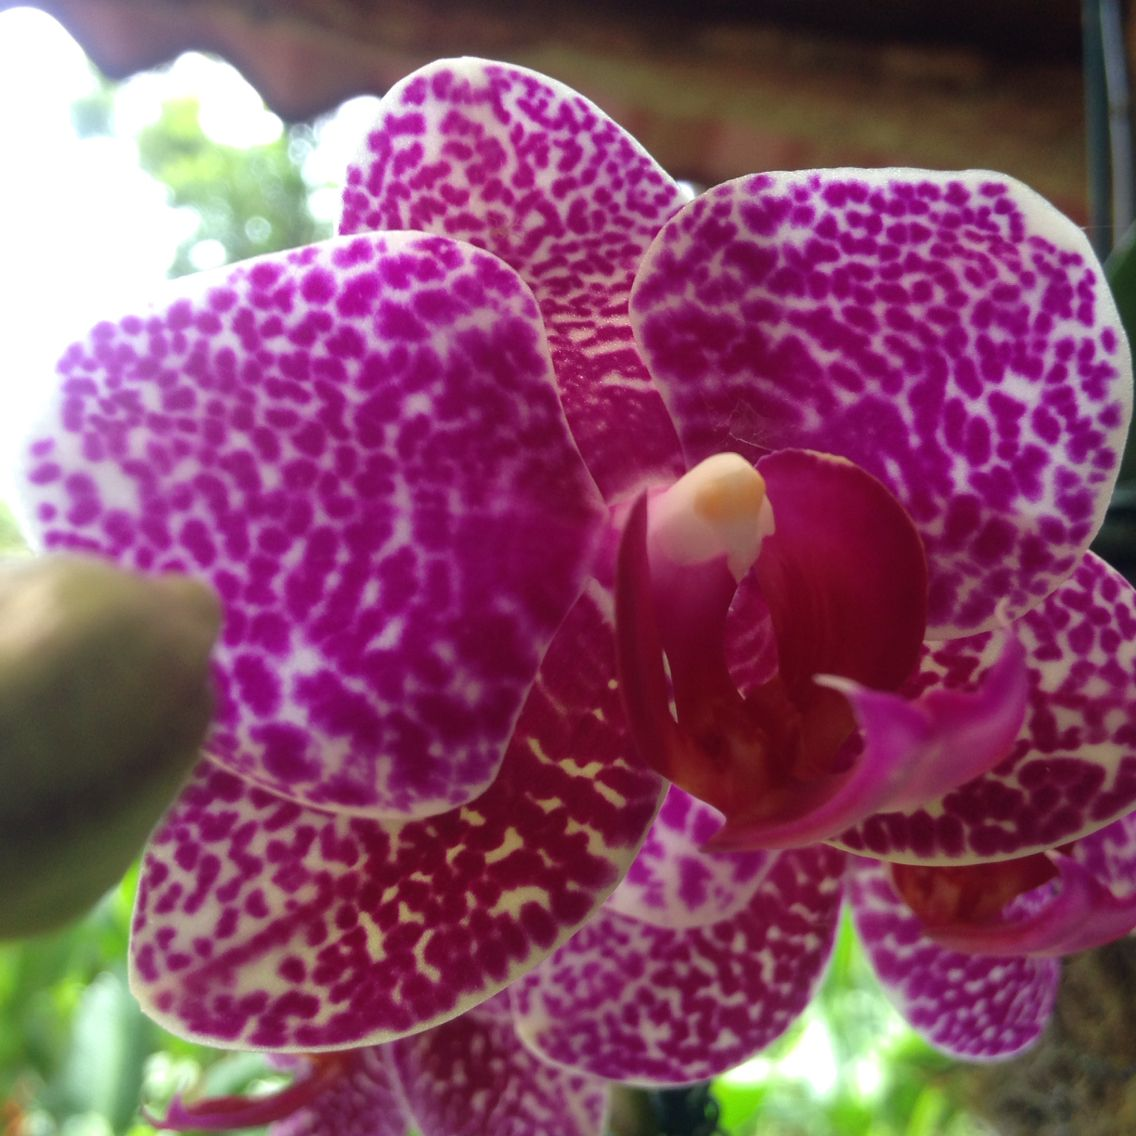 Cool speckled orchid